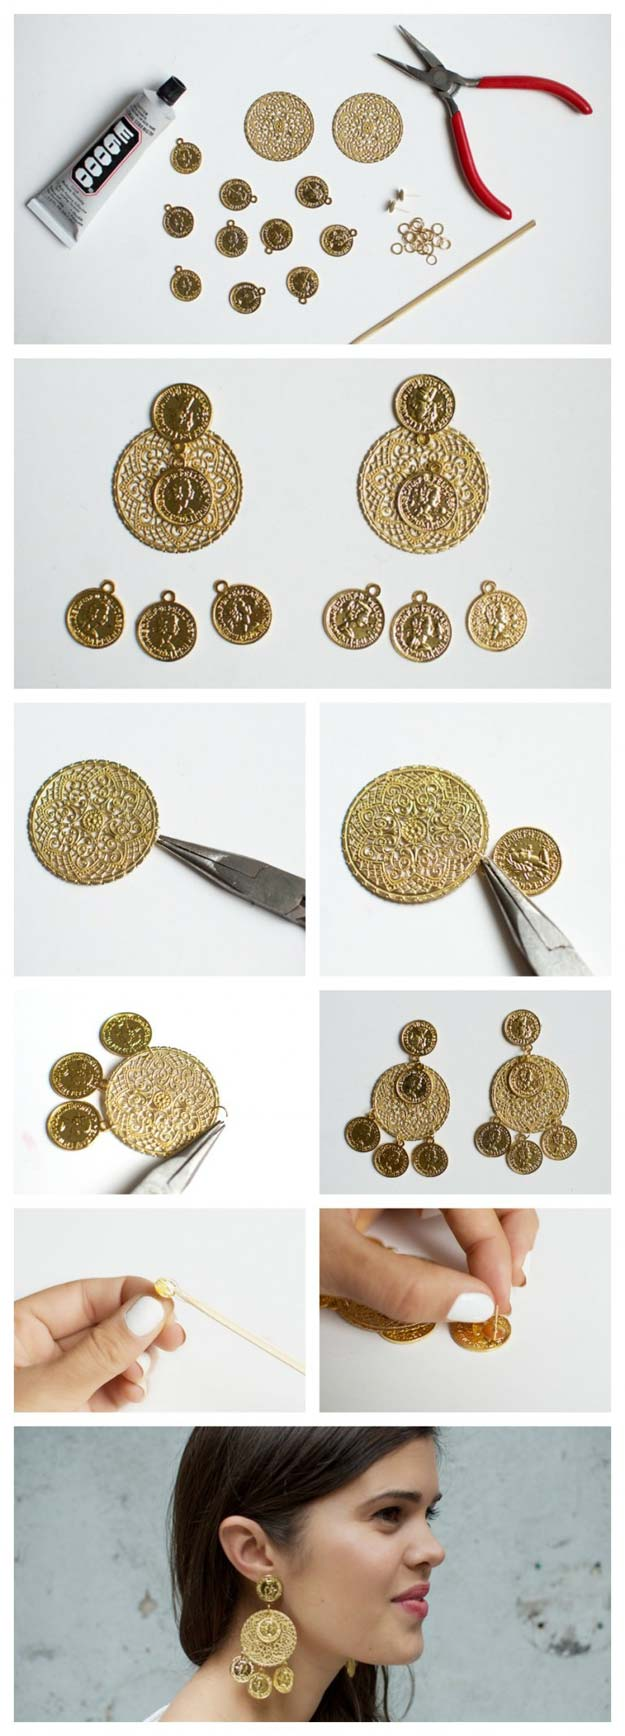 DIY Earrings and Homemade Jewelry Projects - Dolce & Gabbana Inspired Coin Earrings - Easy Studs, Ideas with Beads, Dangle Earring Tutorials, Wire, Feather, Simple Boho, Handmade Earring Cuff, Hoops and Cute Ideas for Teens and Adults http://diyprojectsforteens.com/diy-earrings